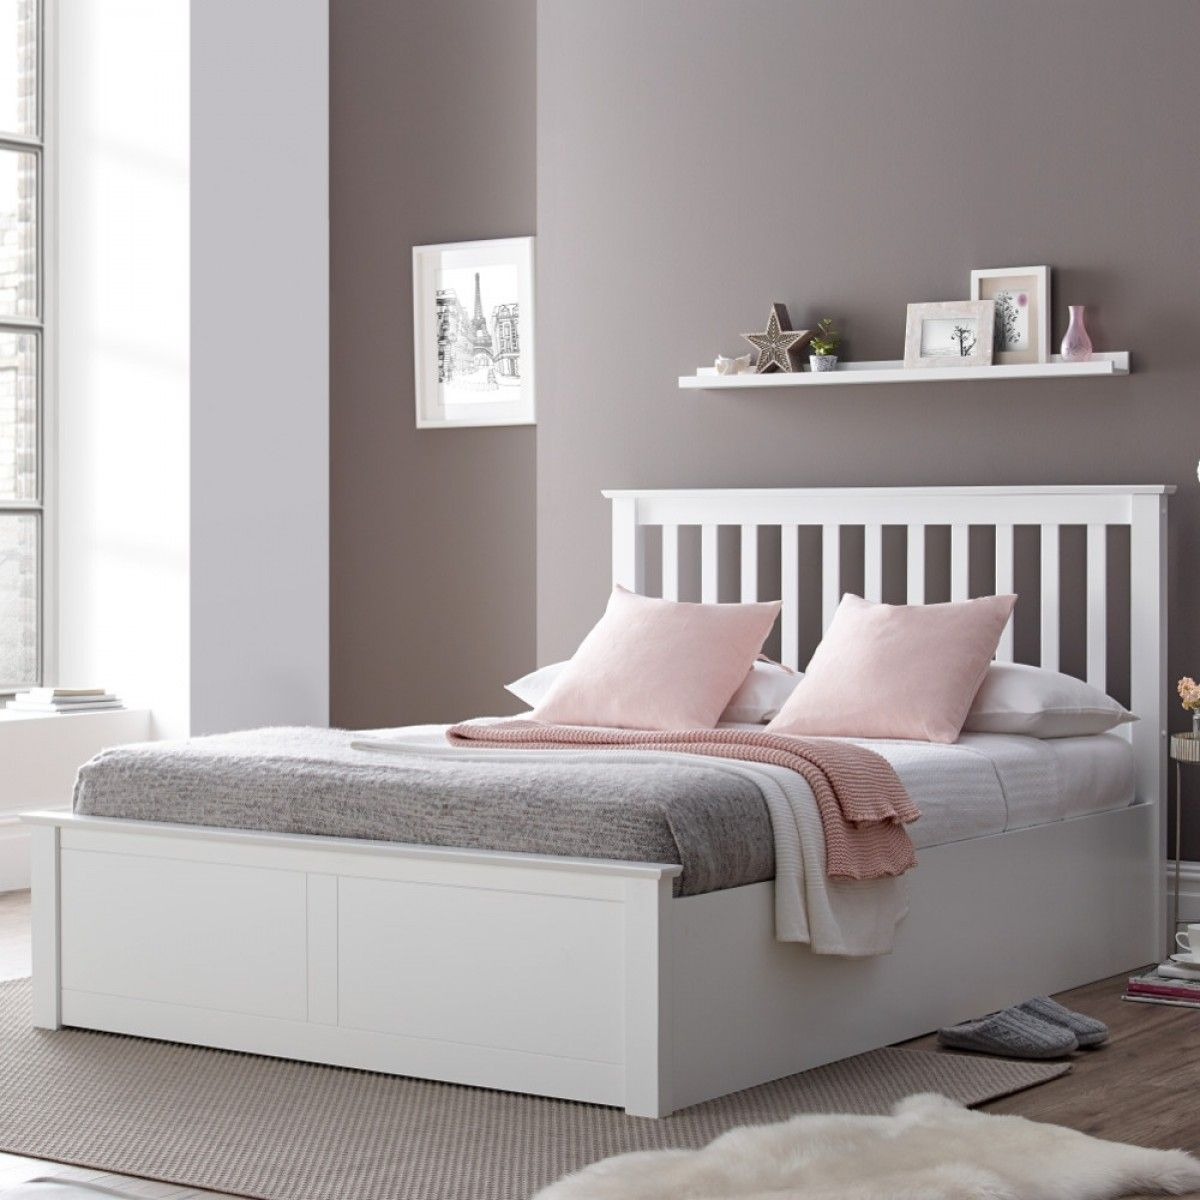 Best Malmo White Wooden Ottoman Bed Bed Frame Bed Designs 400 x 300